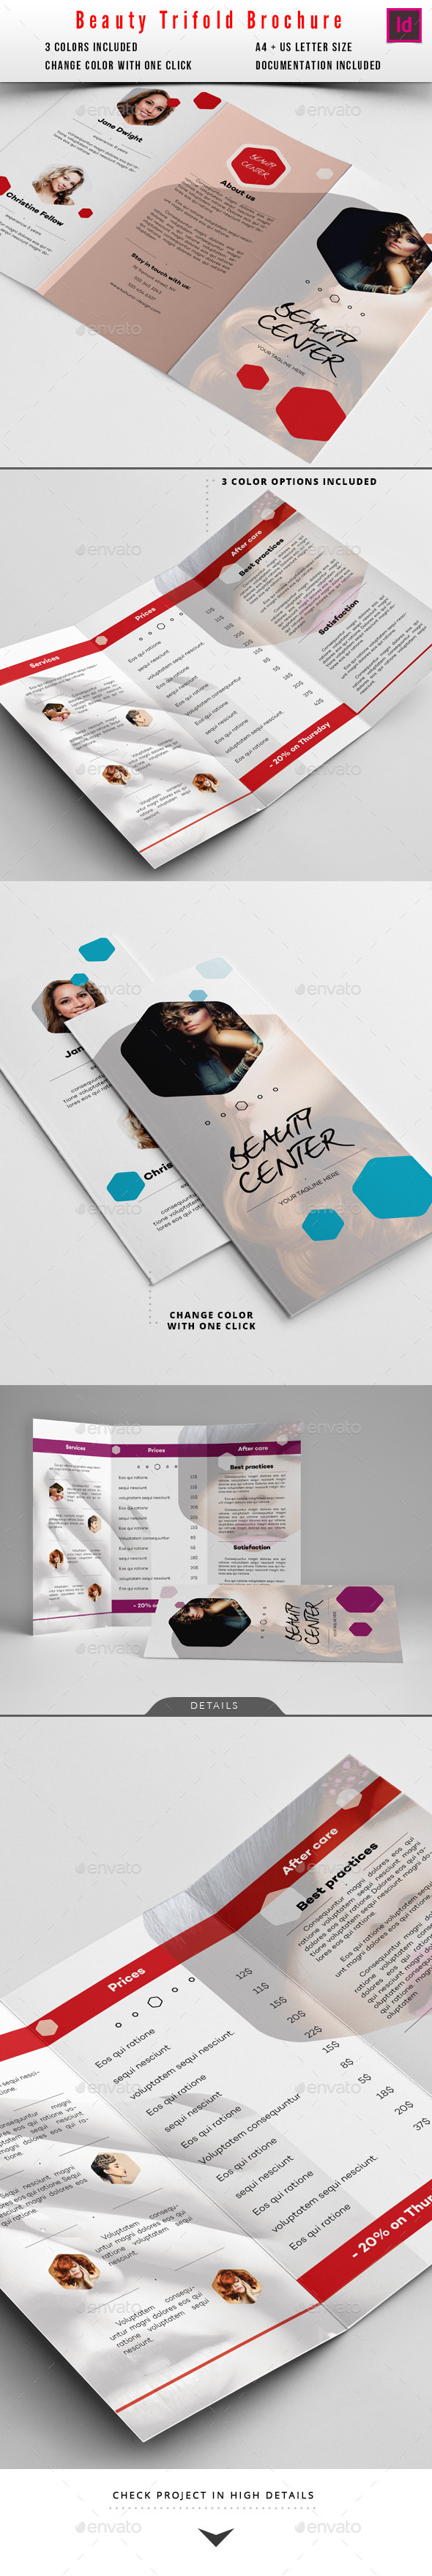 GraphicRiver Beauty Salon Brochure 10130824